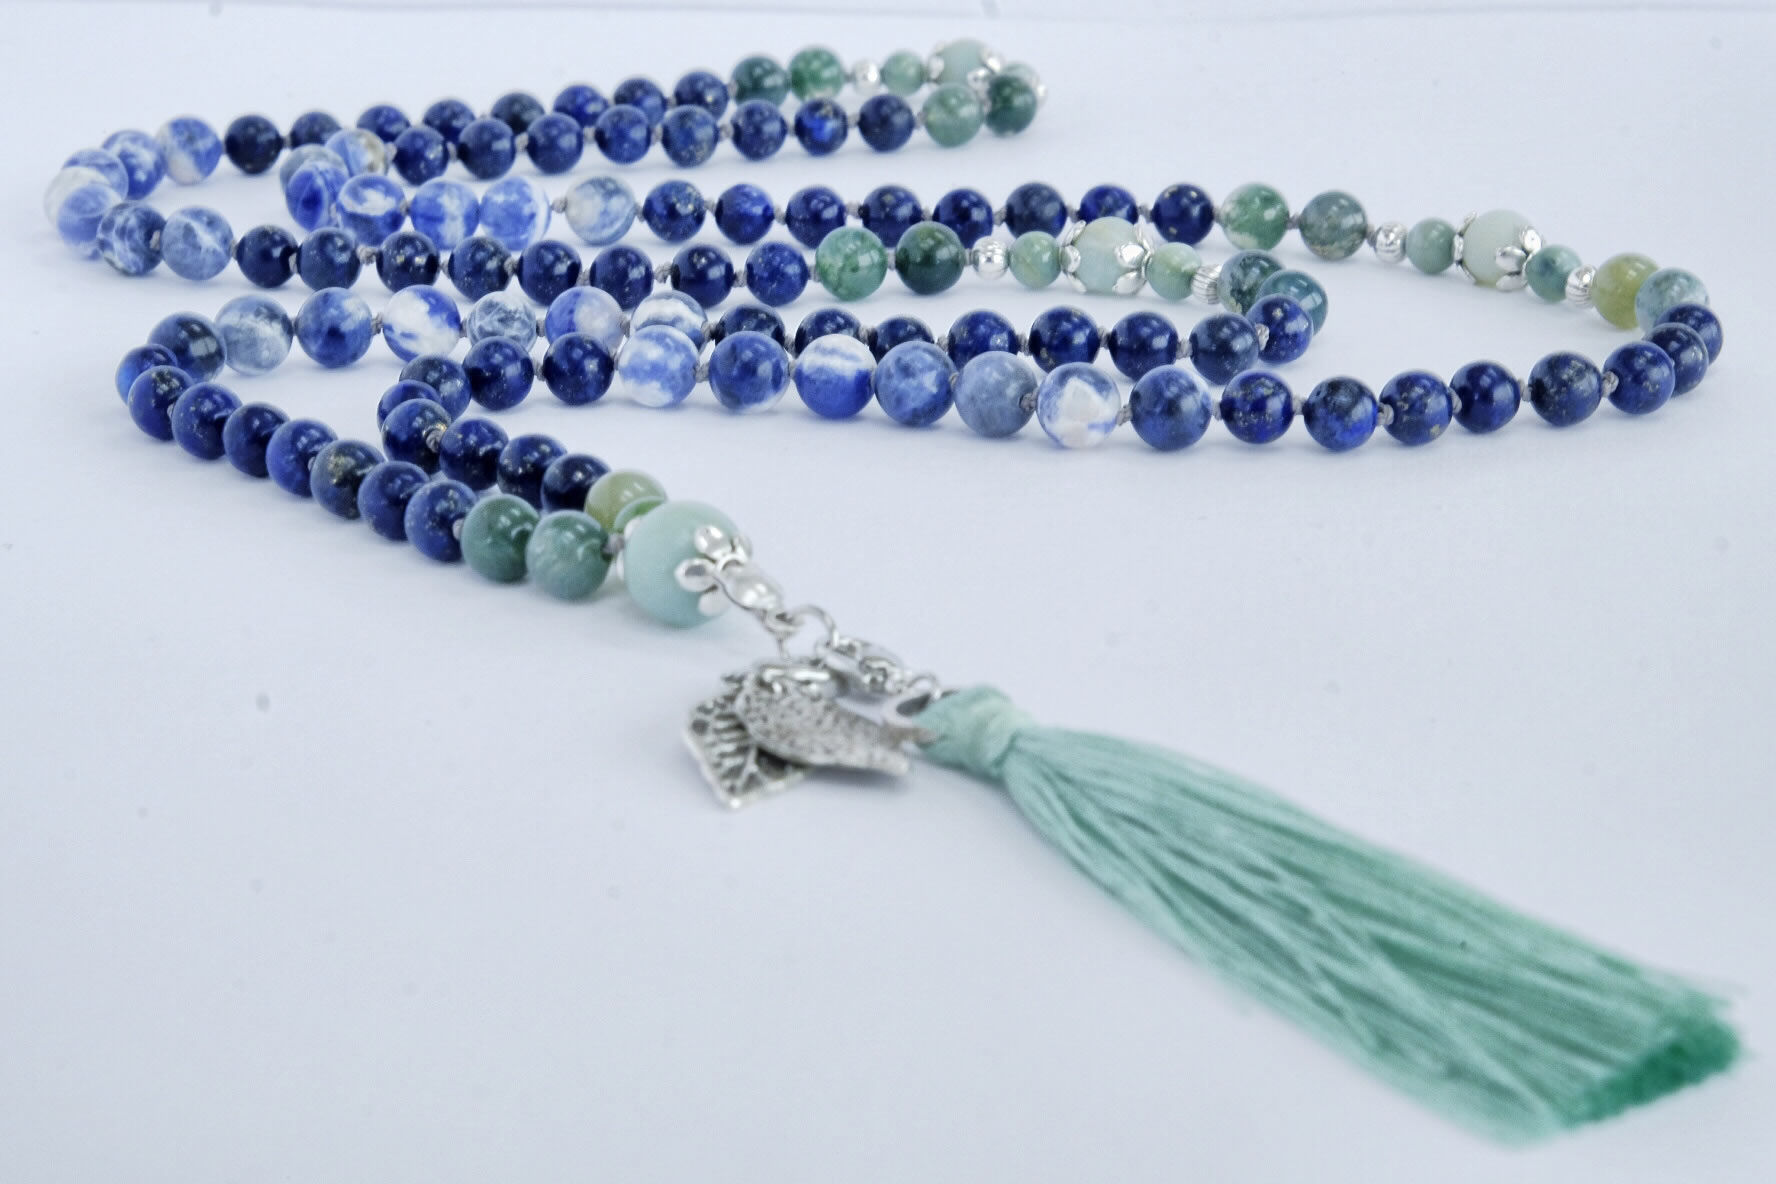 Handmade Mala Yoga Blue Green